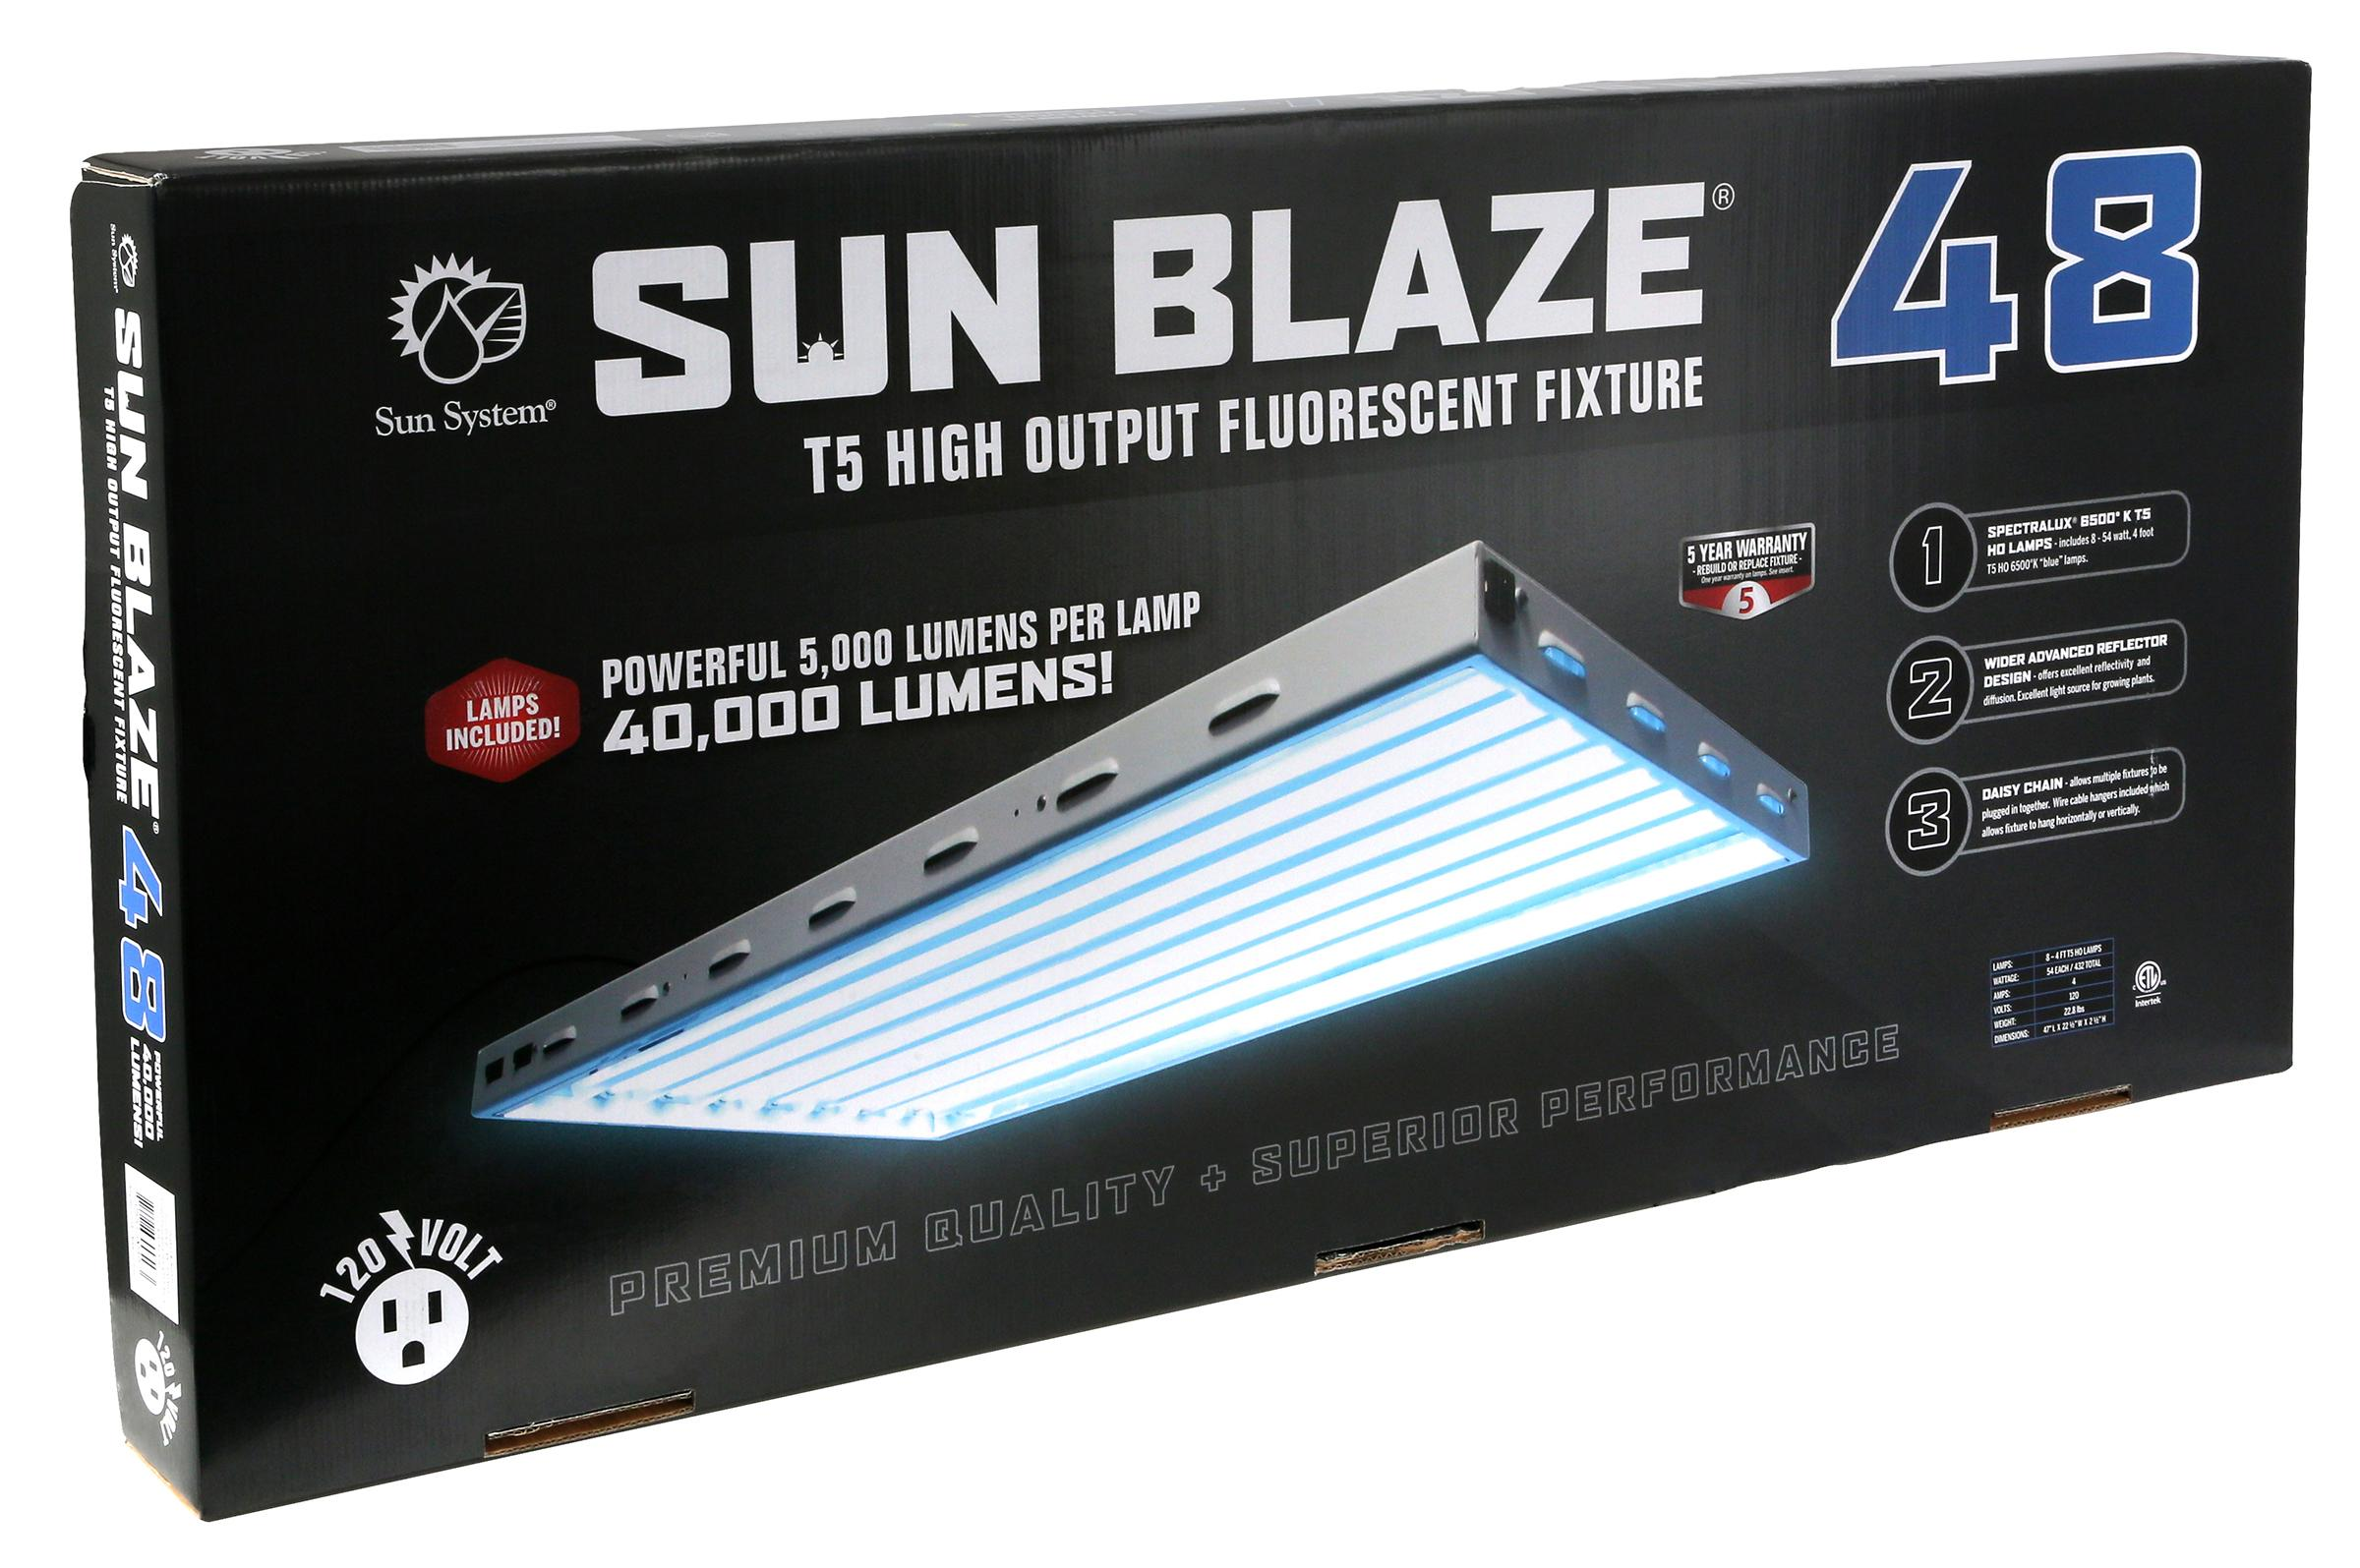 sun blaze 48 4 foot 8 lamp t5 fluorescent system. Black Bedroom Furniture Sets. Home Design Ideas